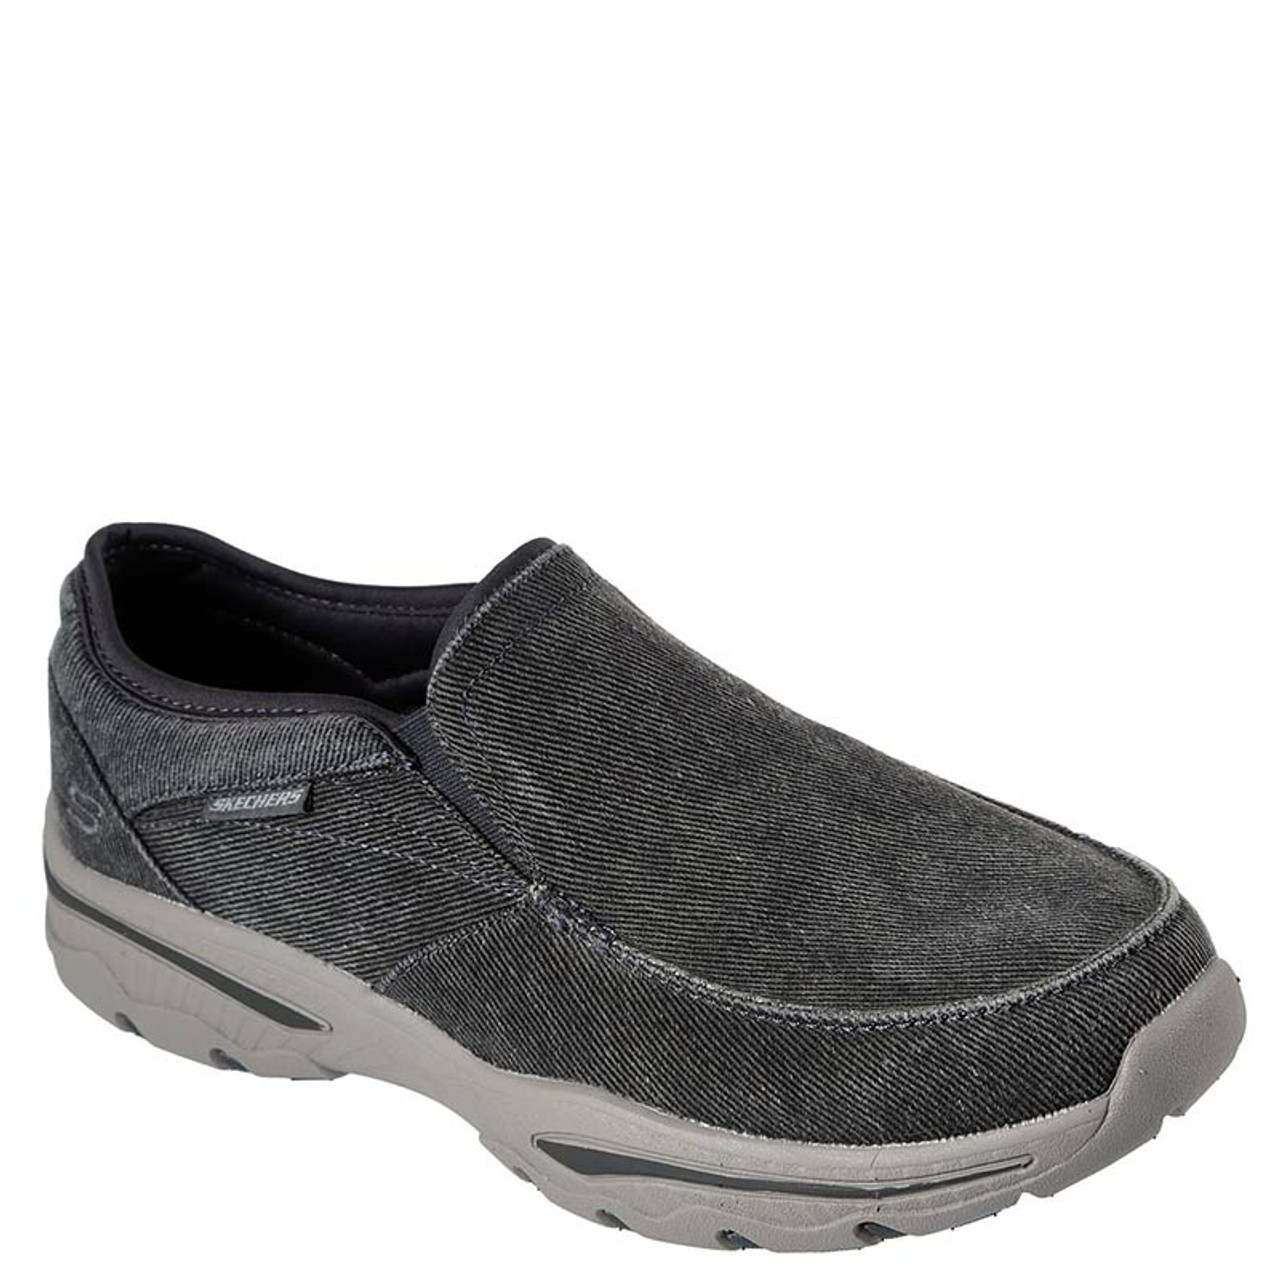 Slip-on CRESTON MOSECO Charcoal Shoes